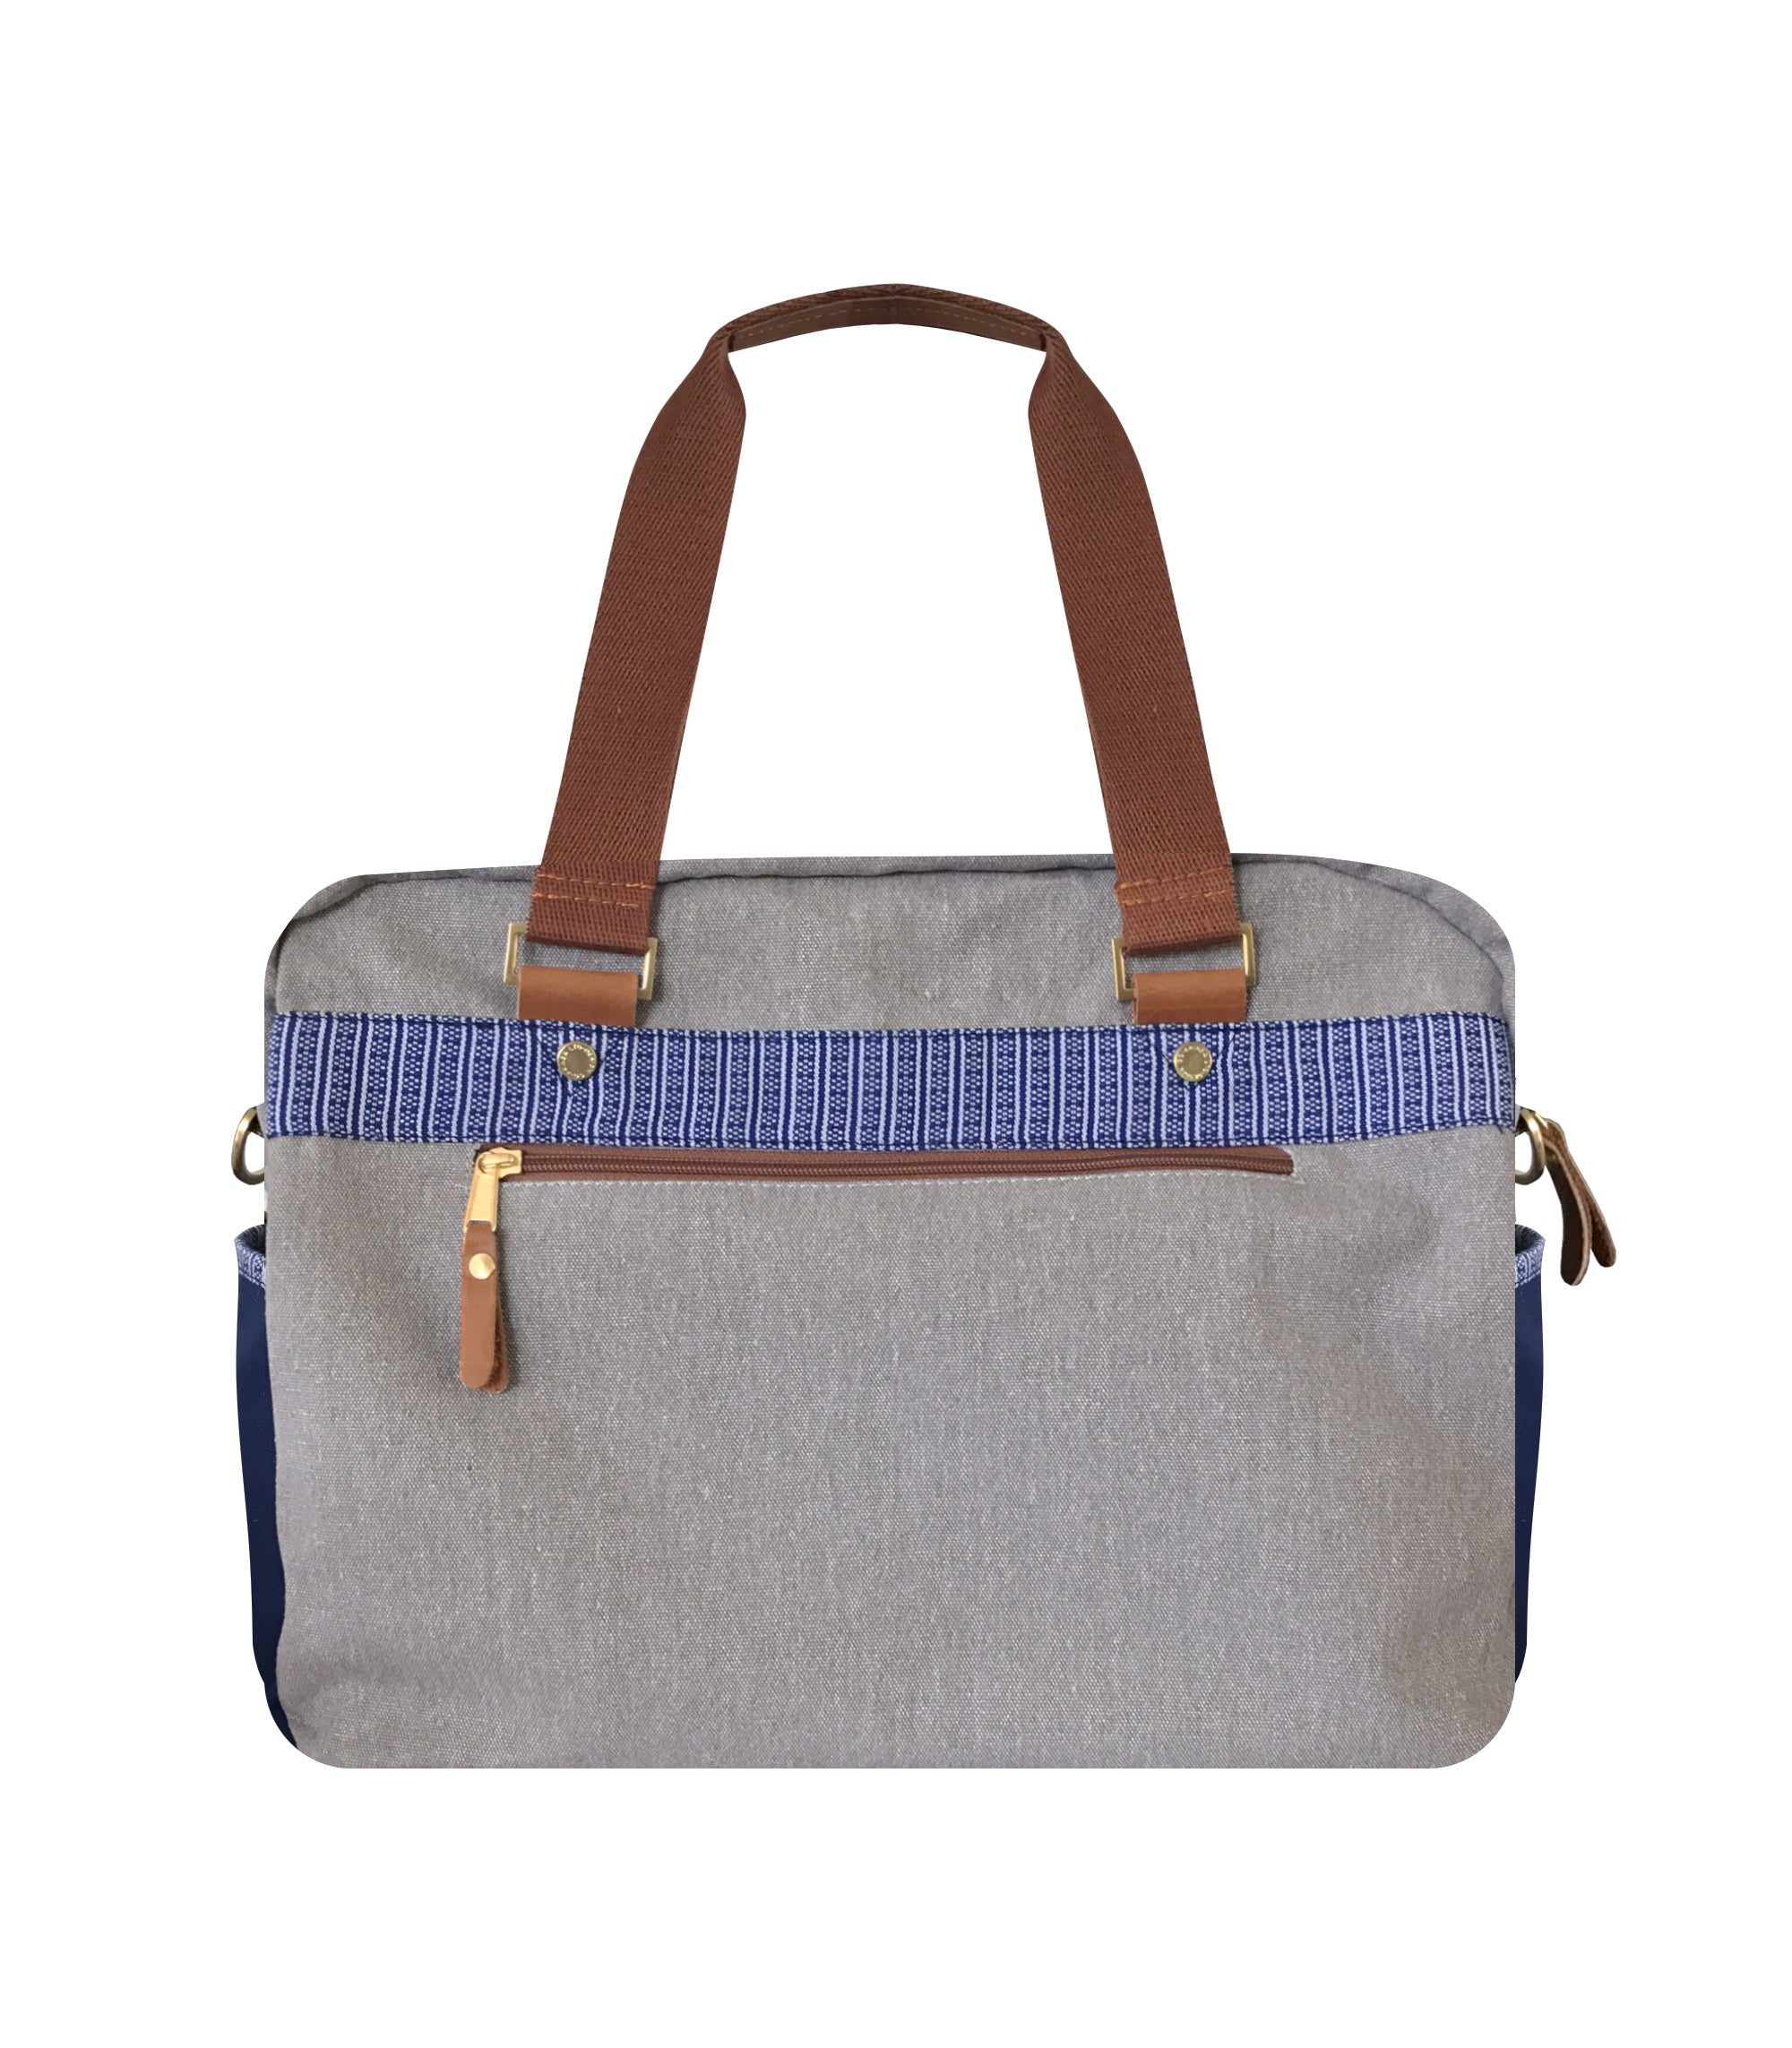 Cargo Boston Duffle Bag